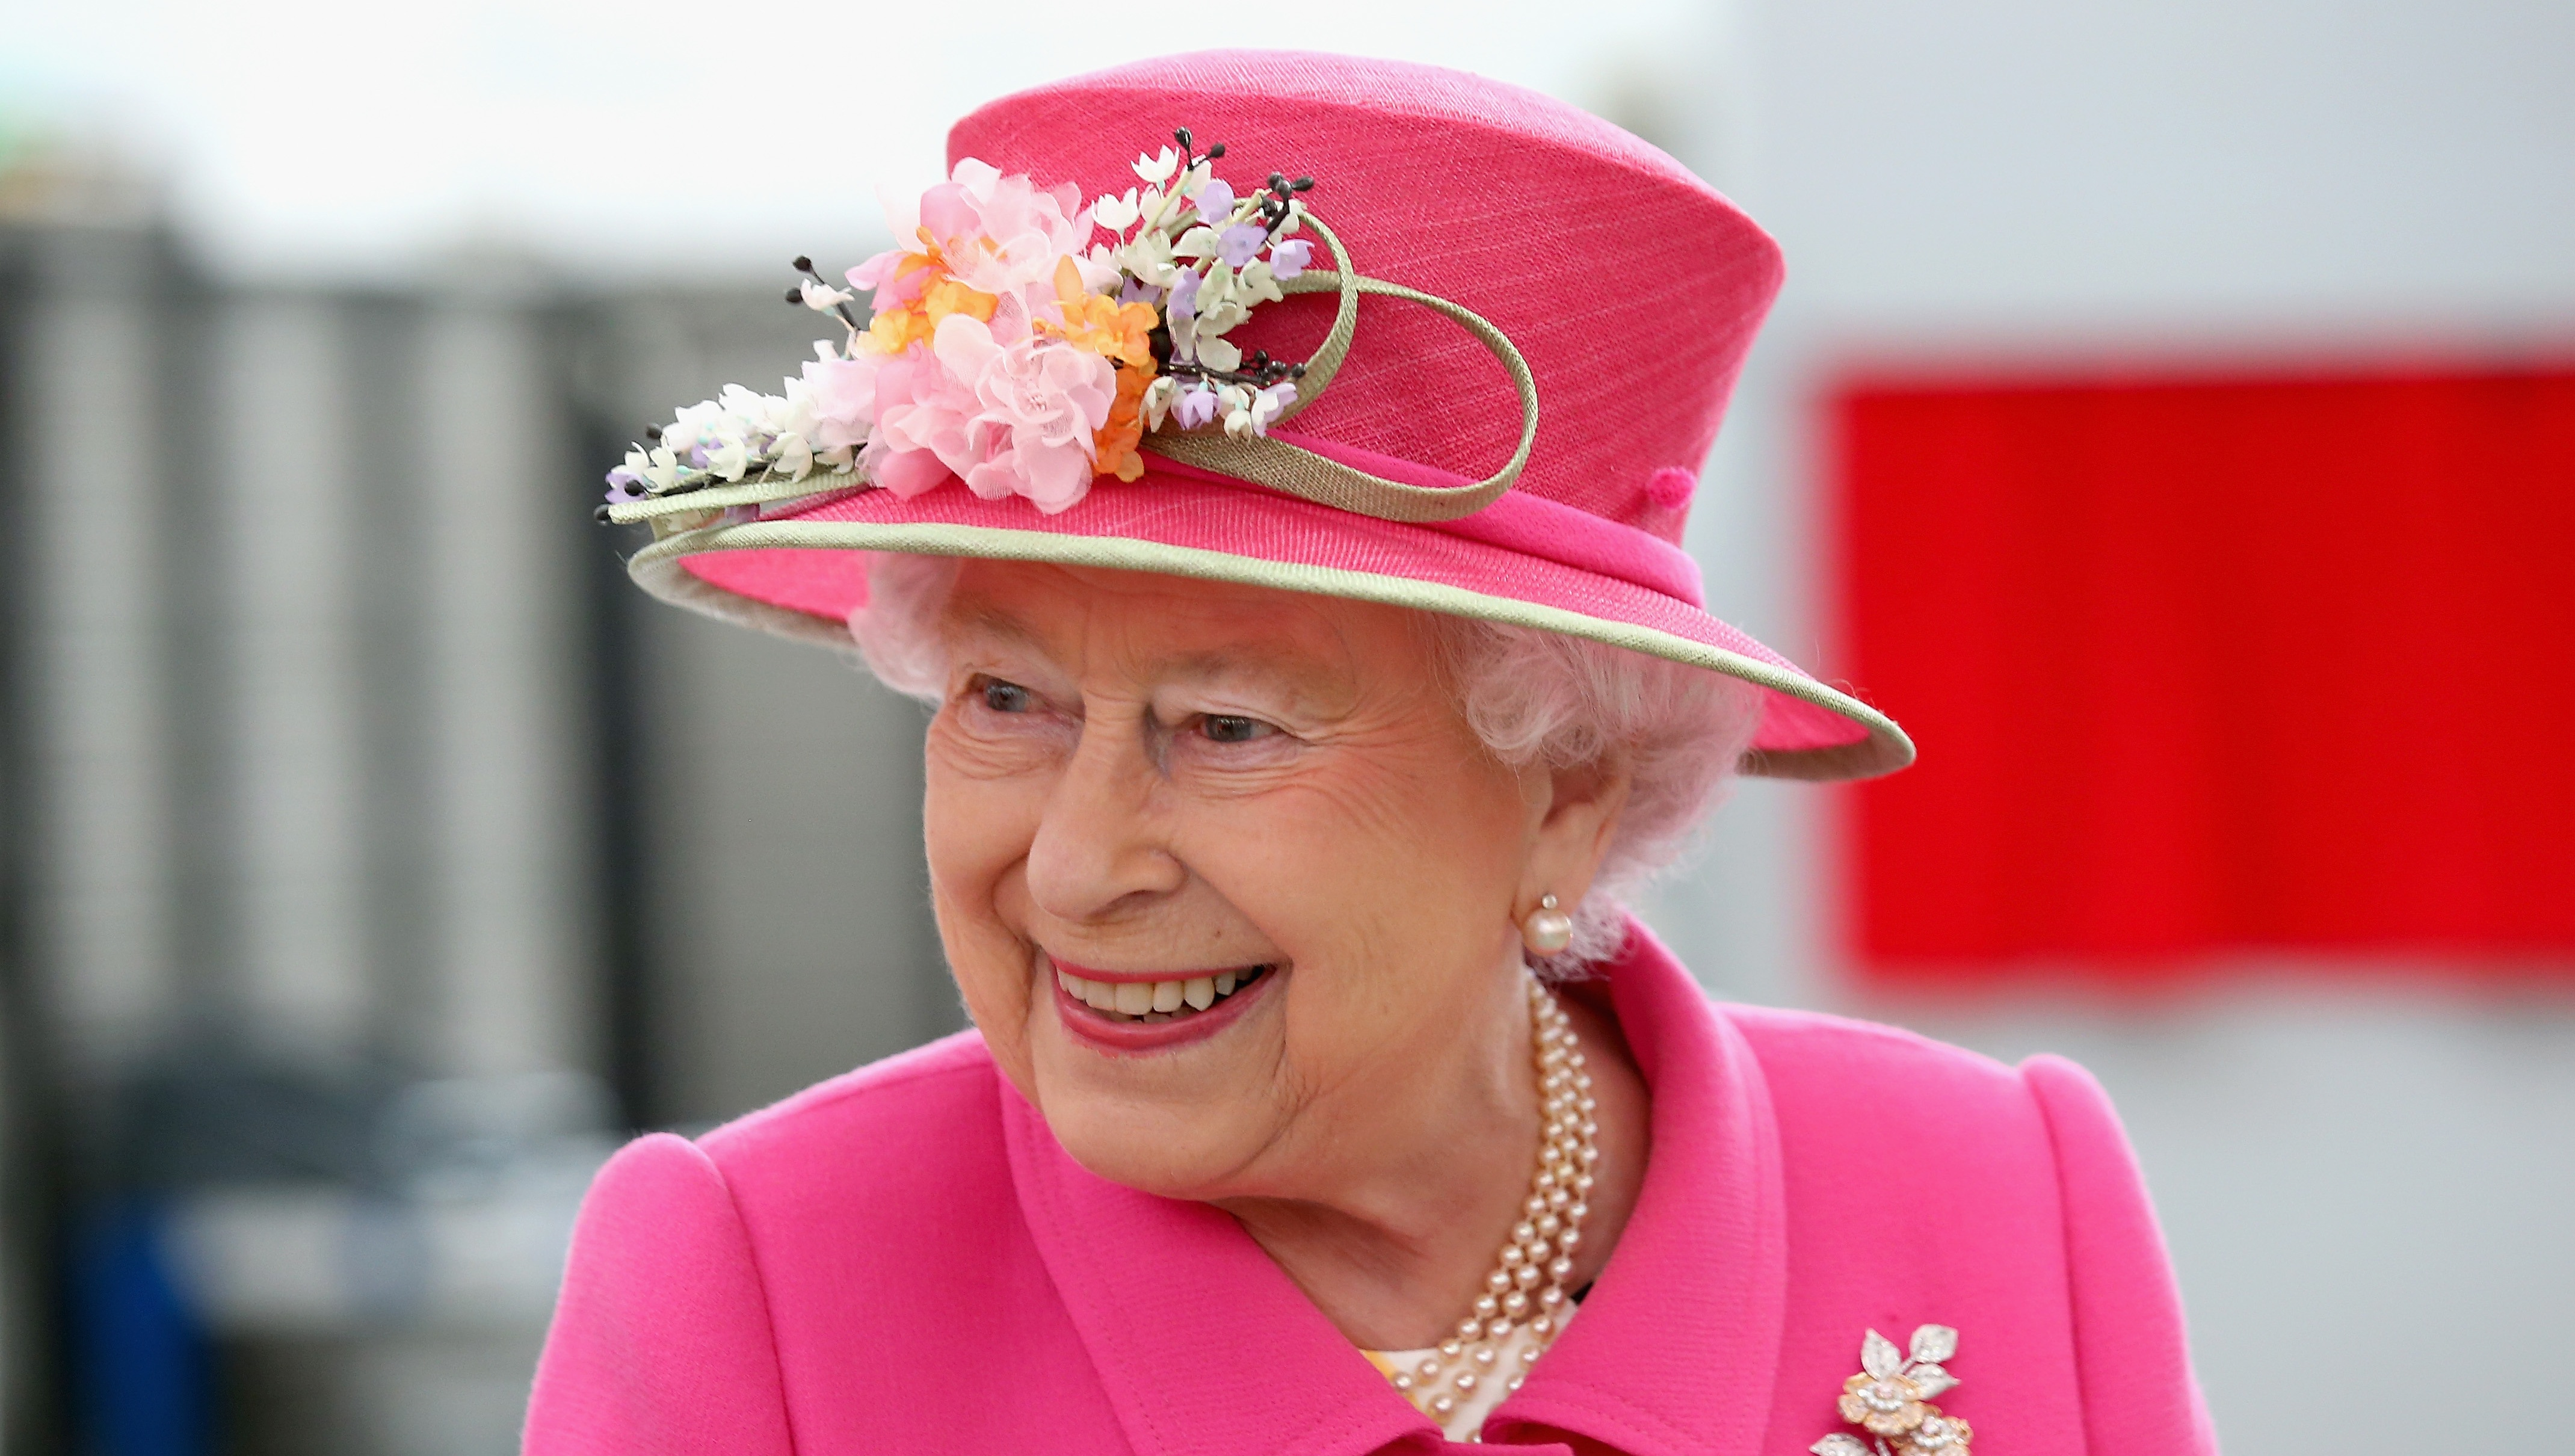 Queen Elizabeth II smiling in a pink outfit and matching hat